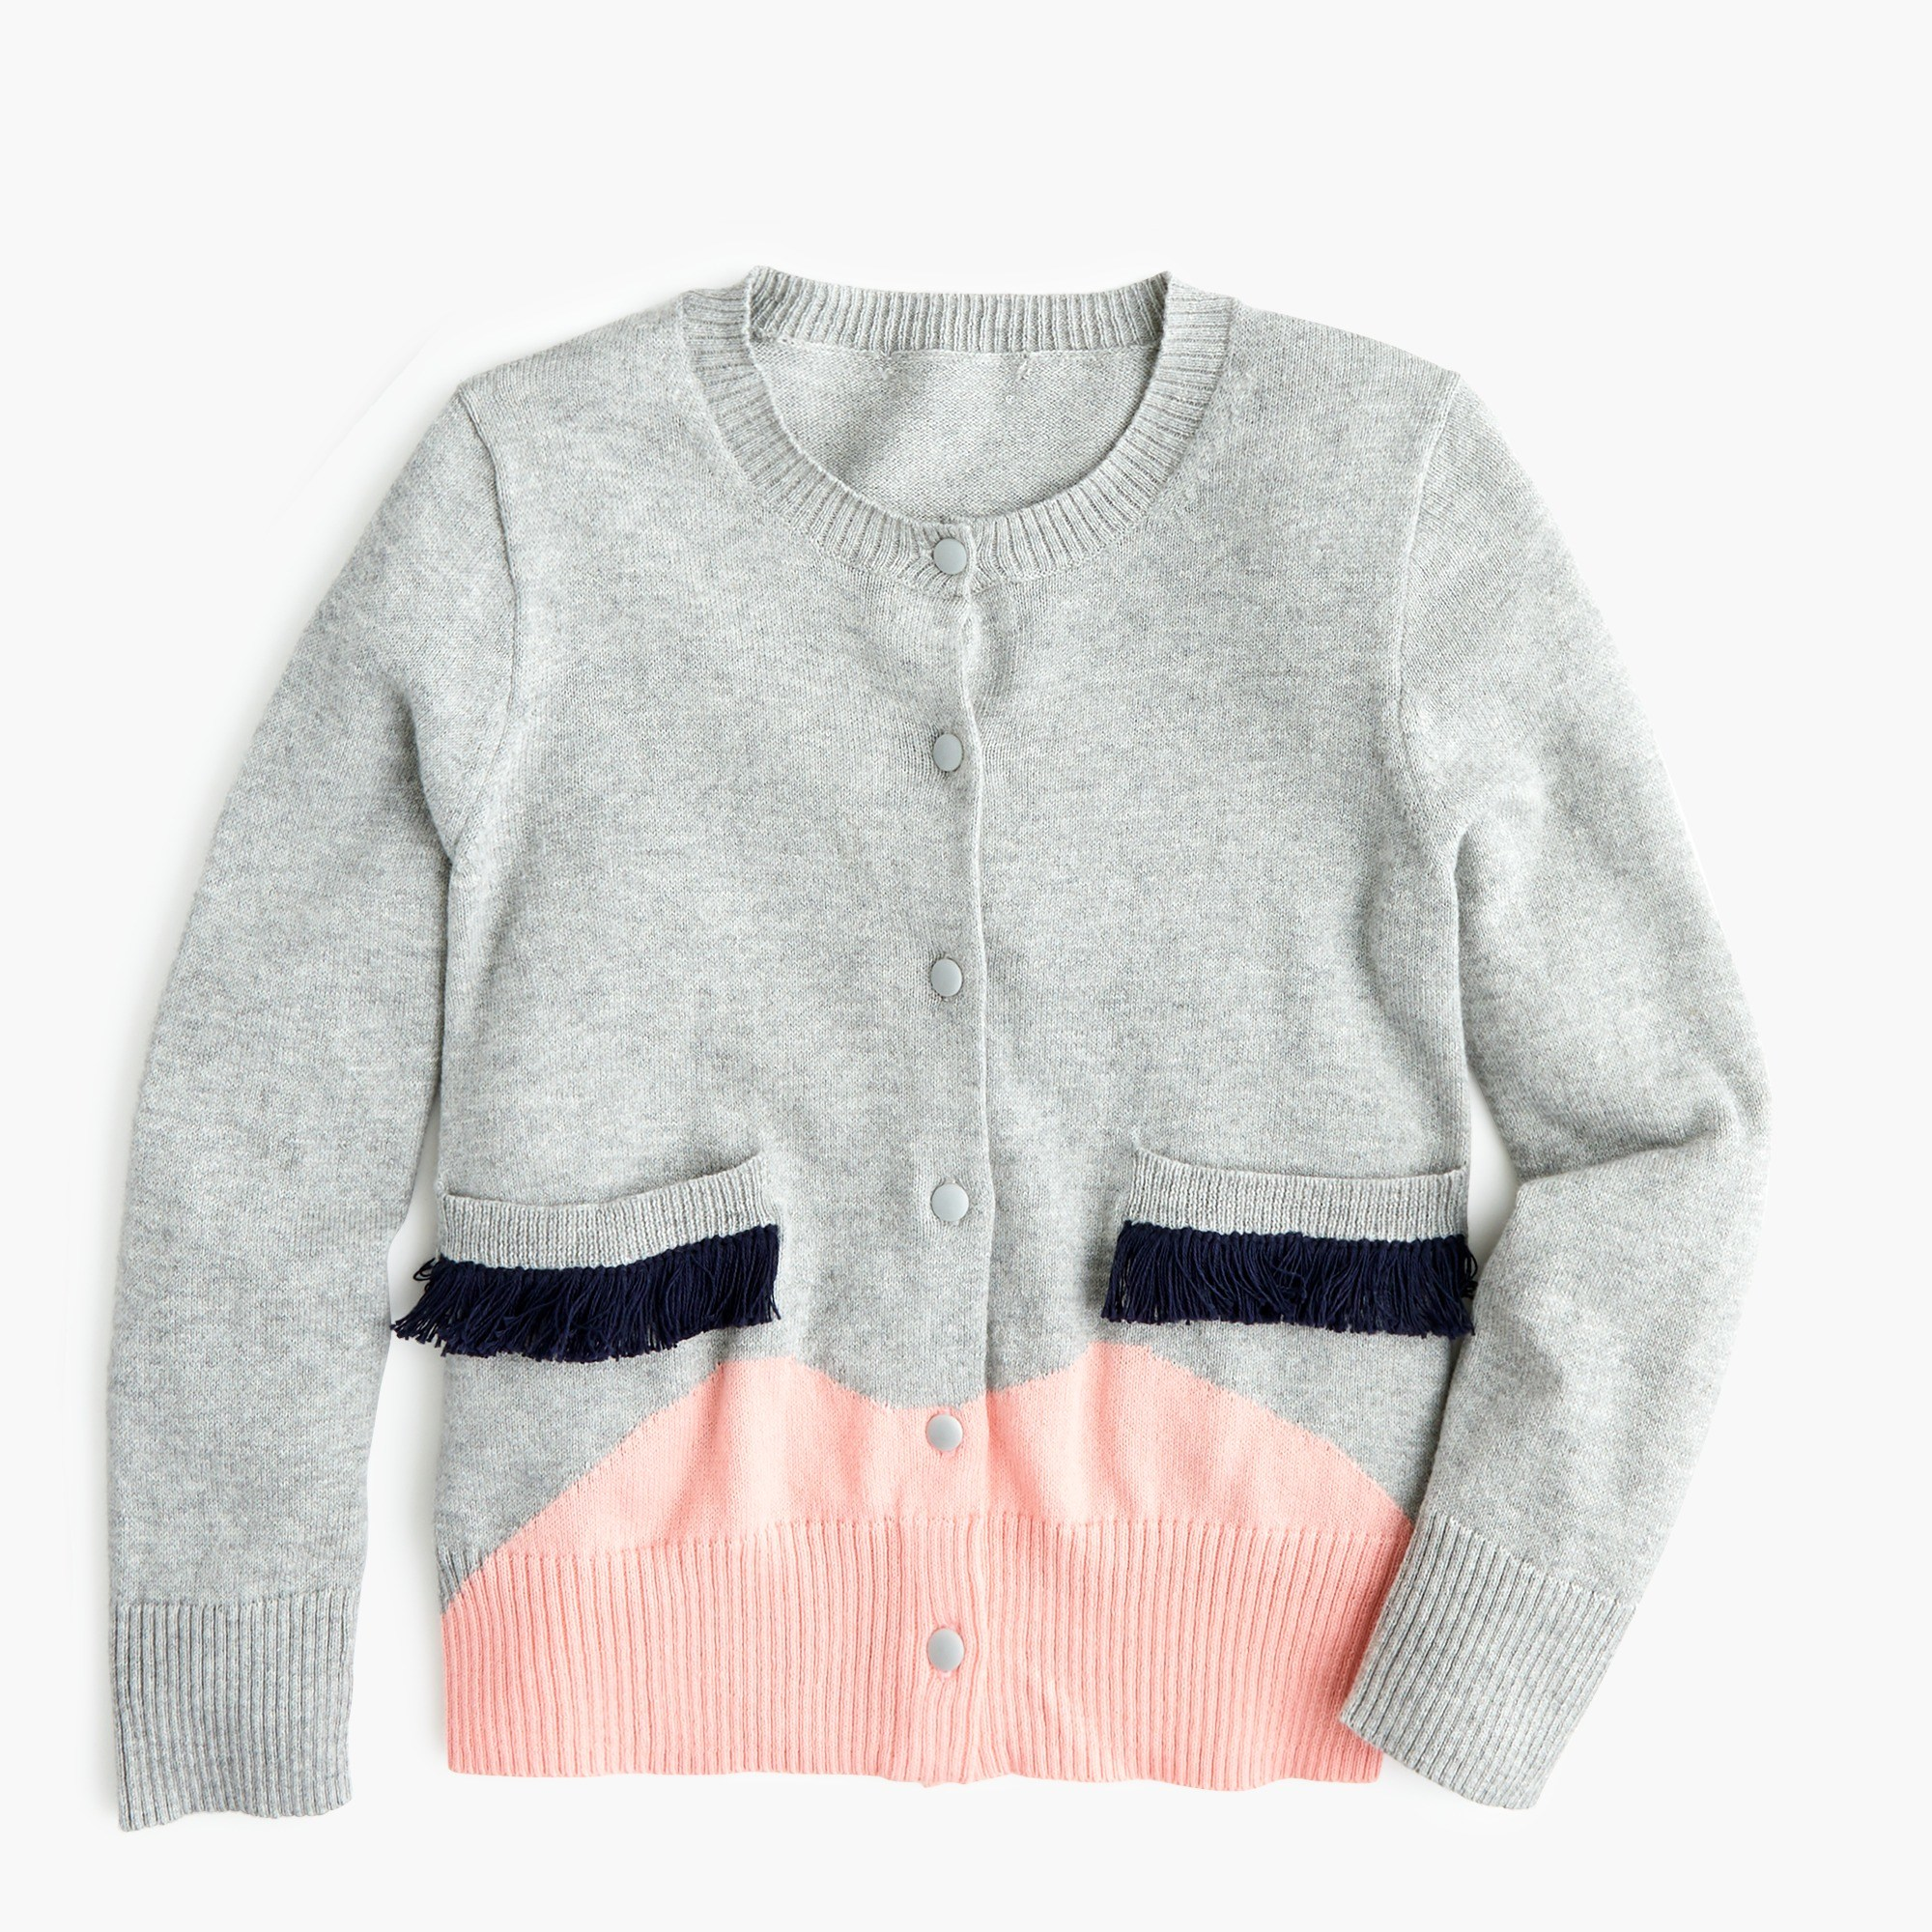 Girls' cardigan sweater with face : Girl cardigans | J.Crew